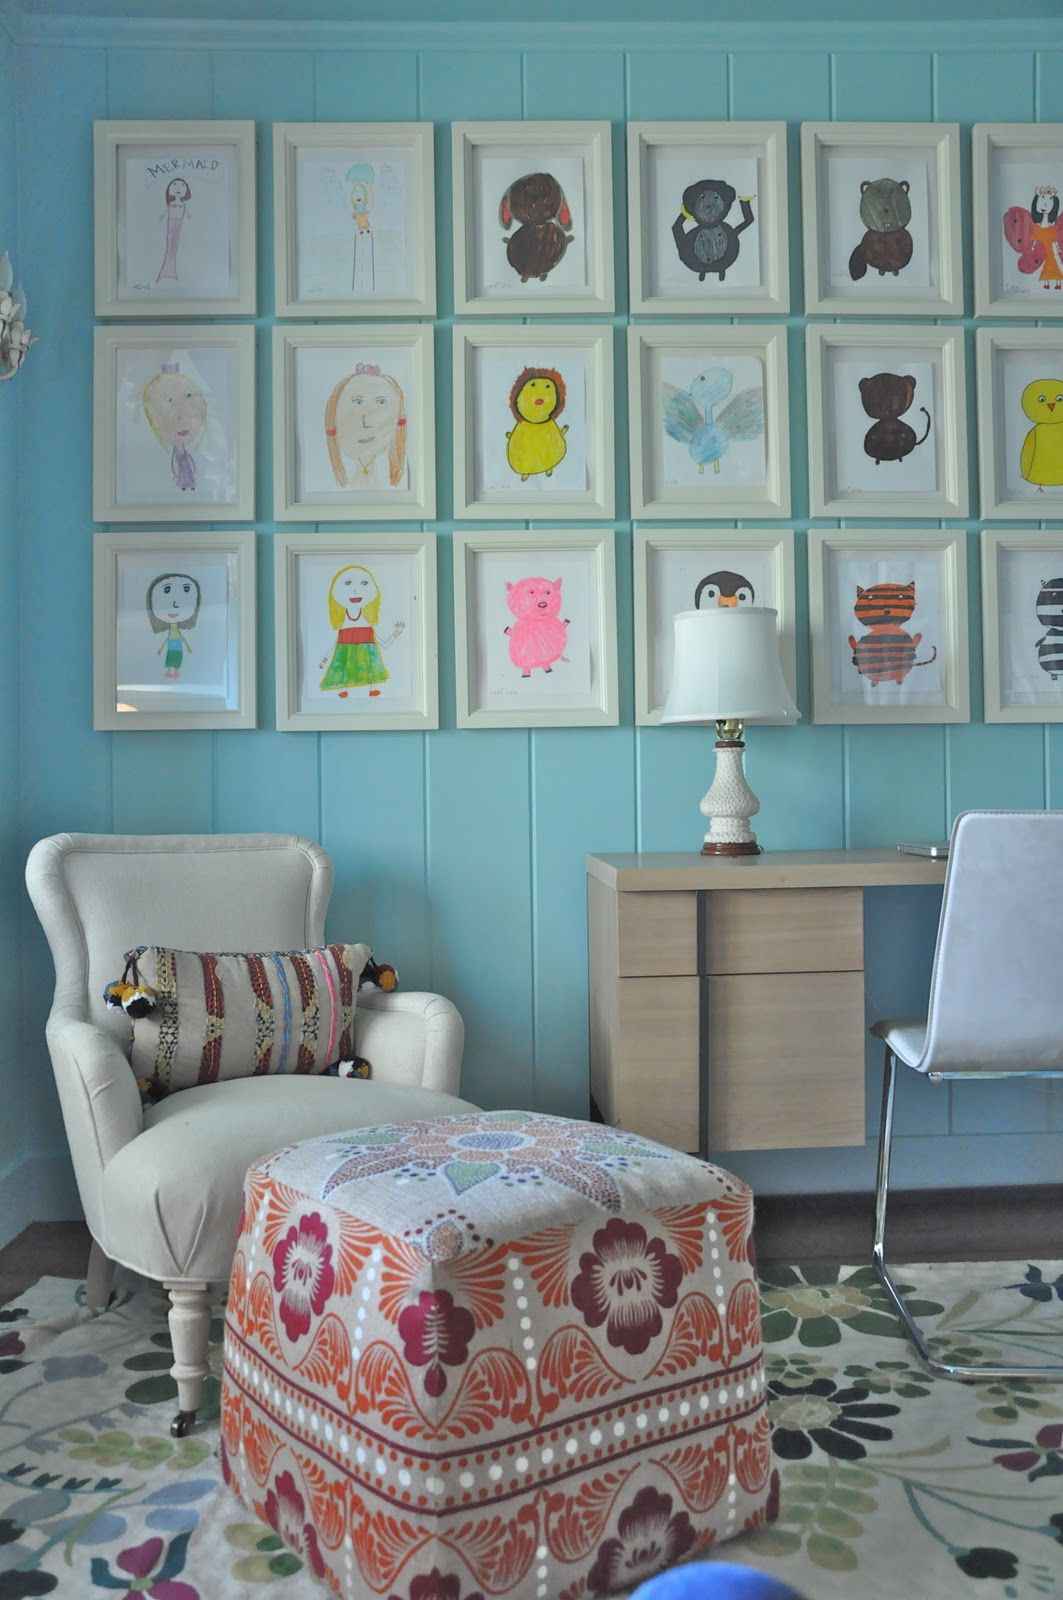 girls' room redo ideas put their drawings/ characters in matching